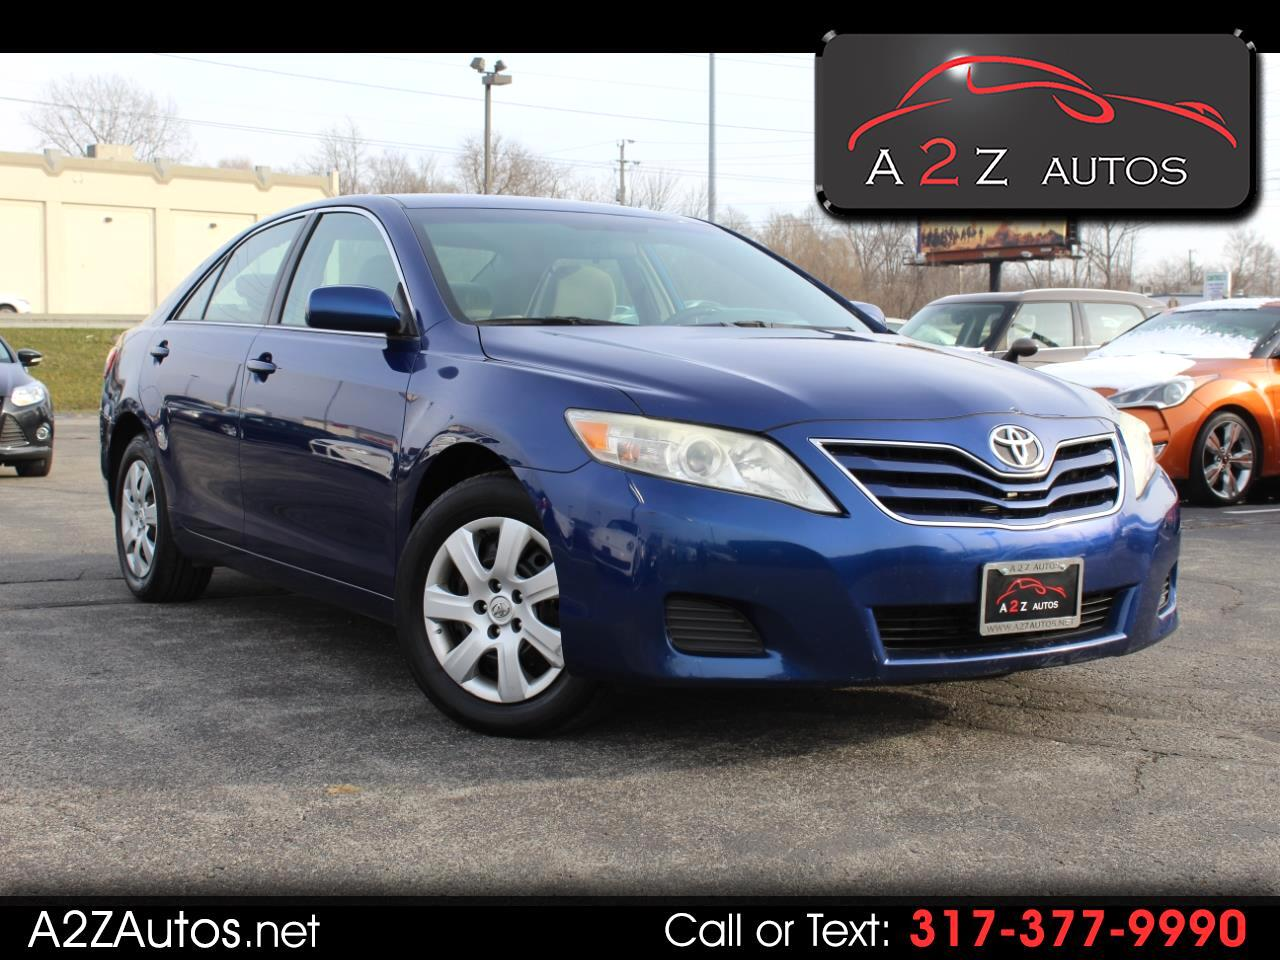 Toyota Camry 4dr Sdn I4 Auto LE (Natl) 2011